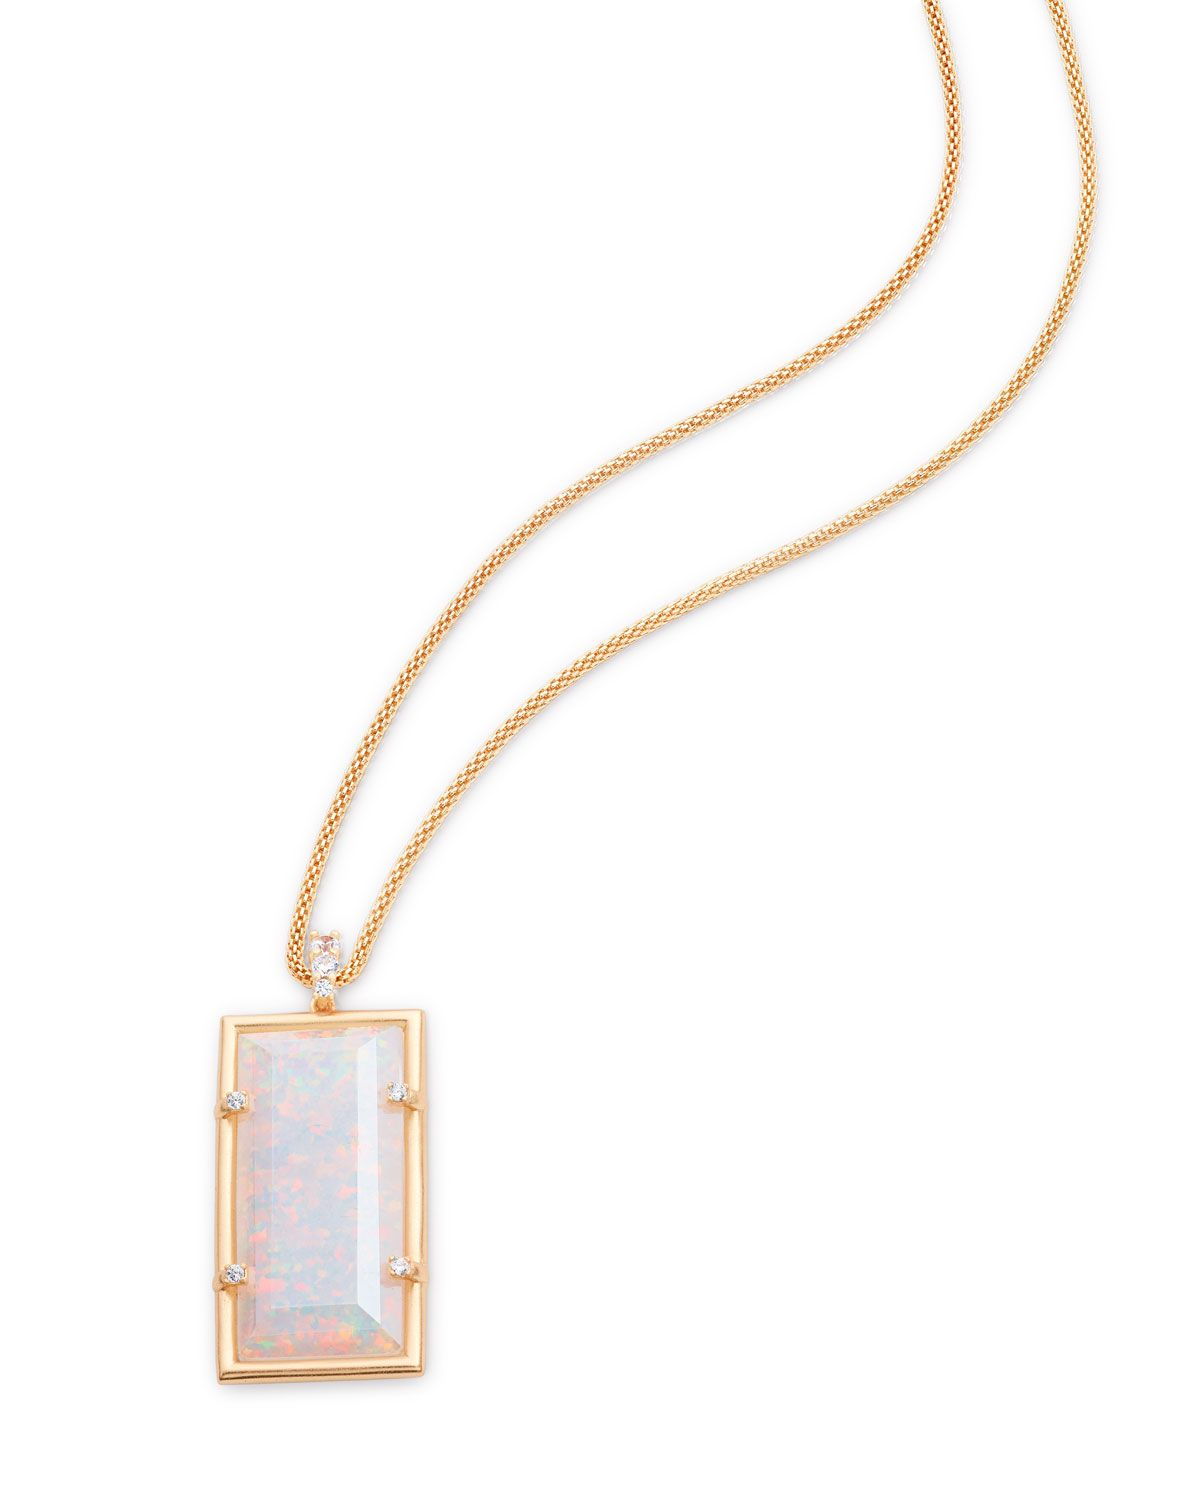 Kendra scott edith pendant necklace products